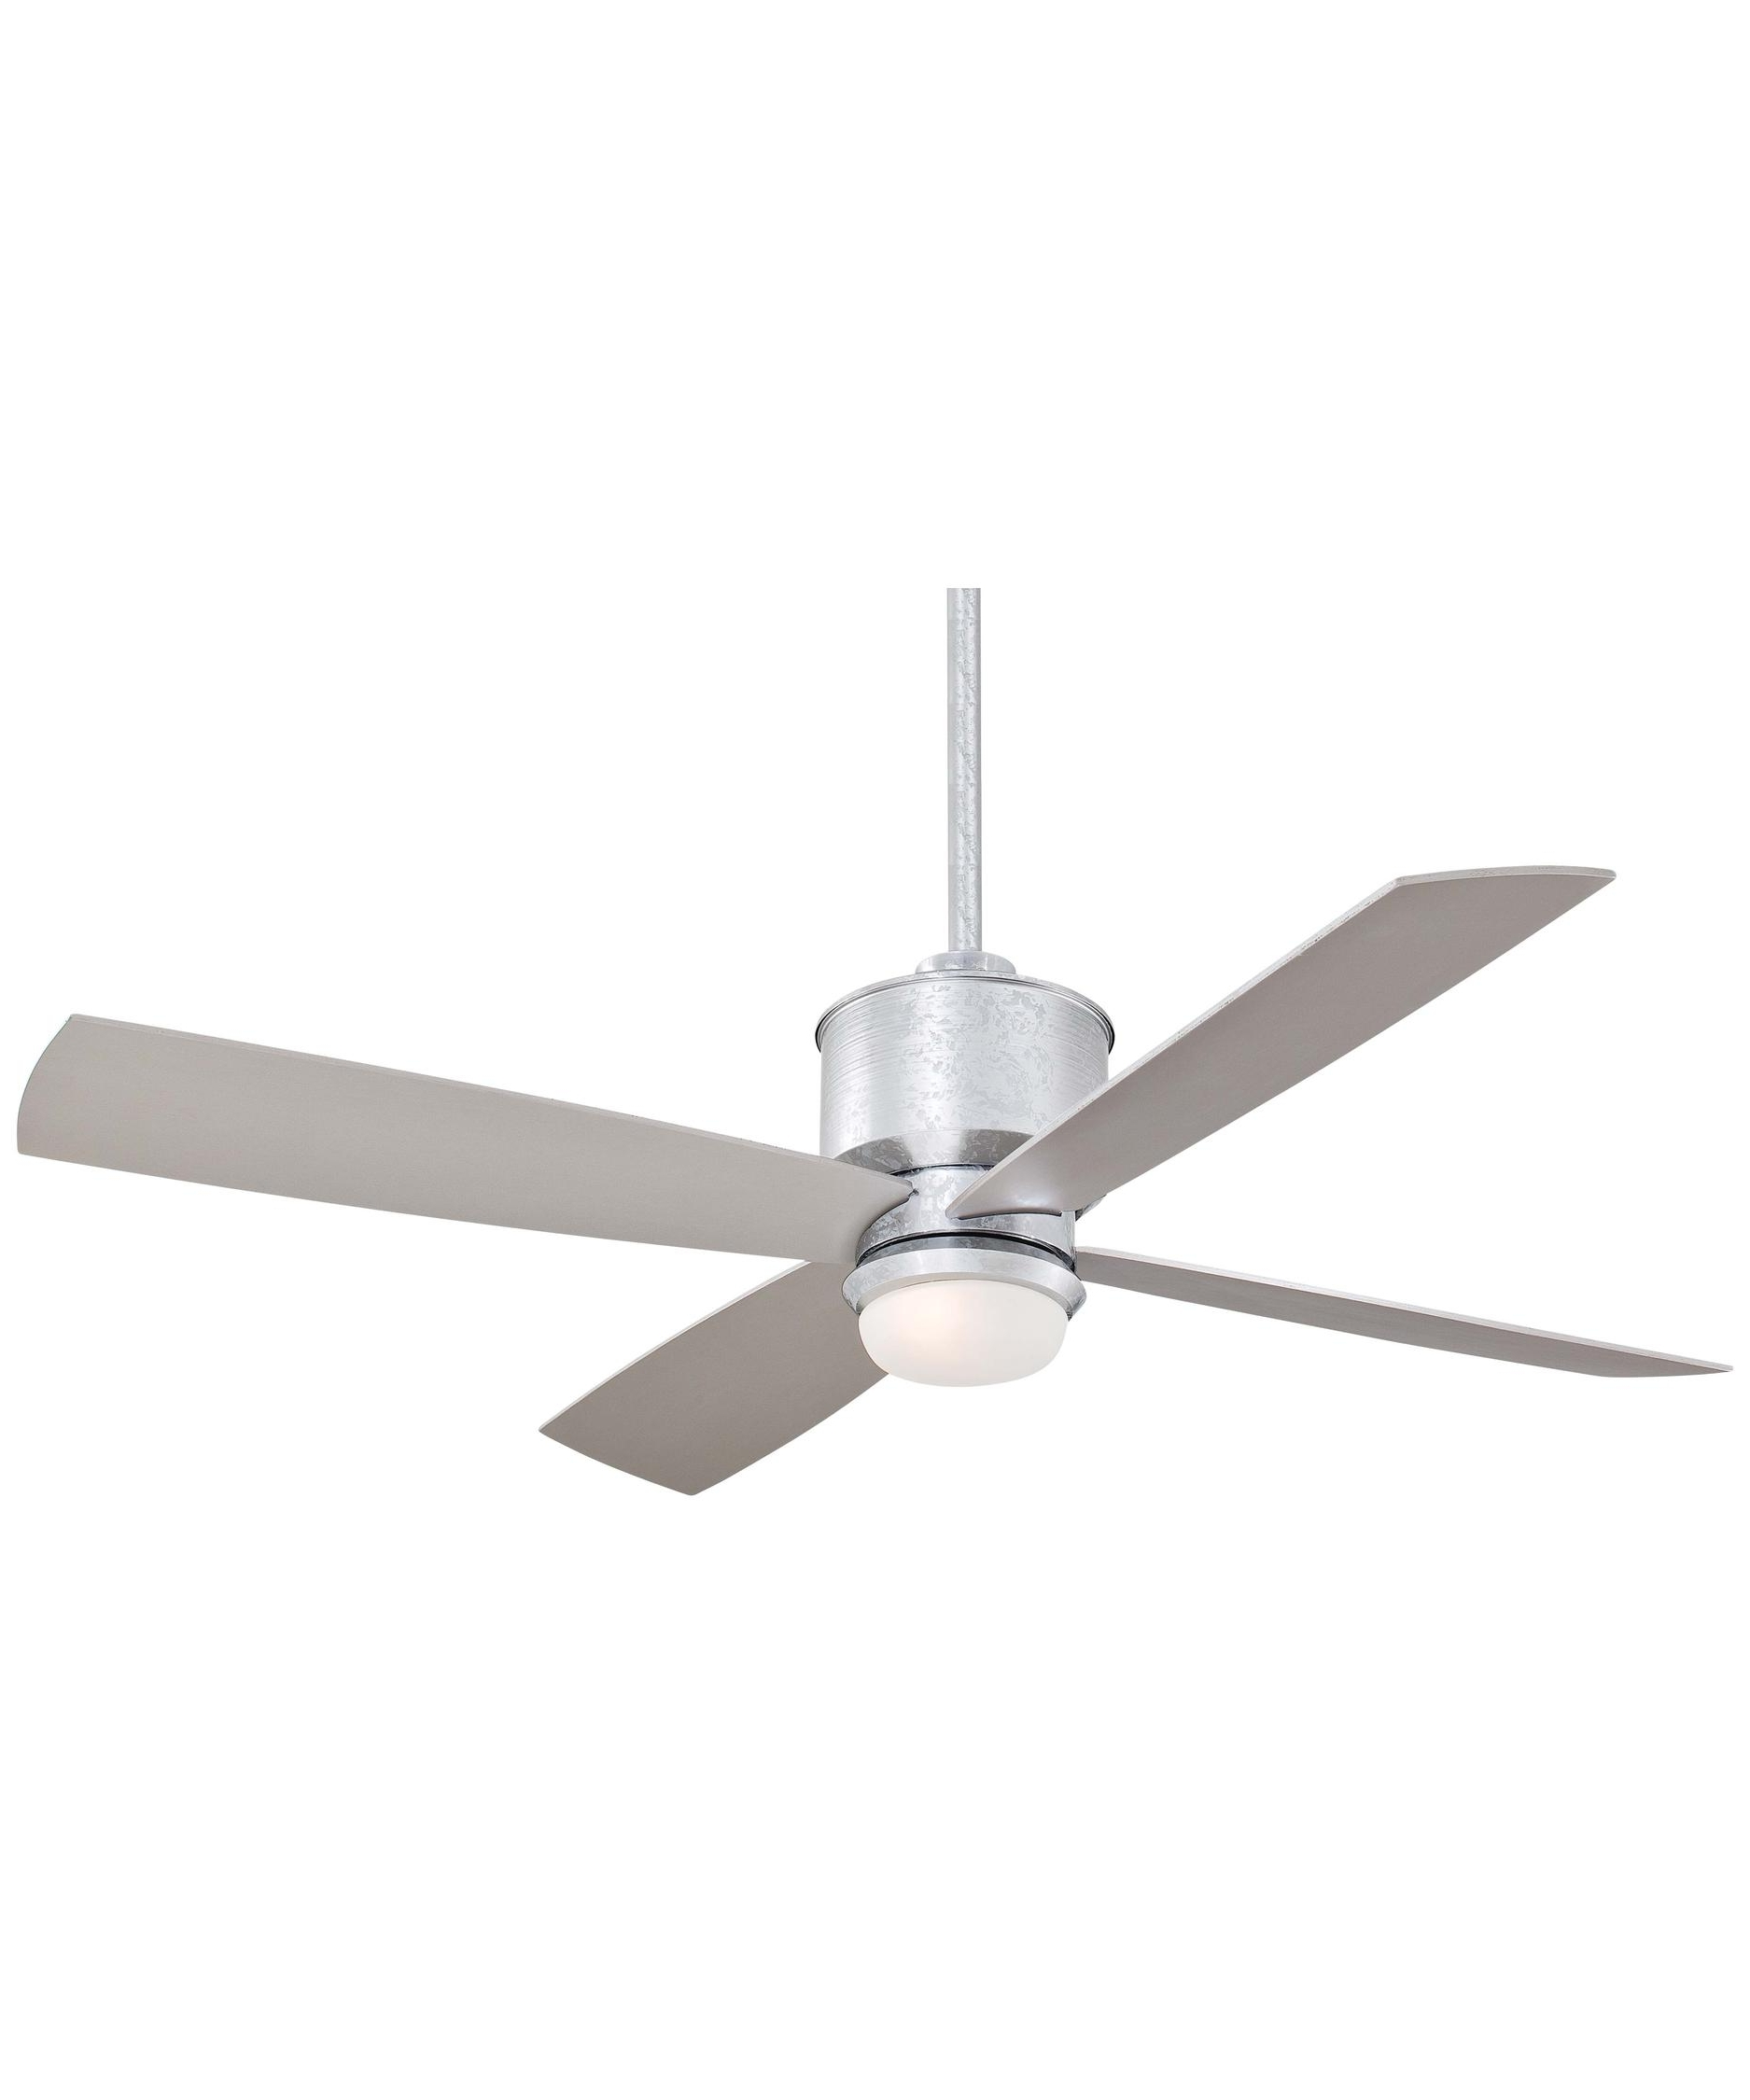 Minka Aire F734 Strata 52 Inch 4 Blade Ceiling Fan (View 7 of 20)